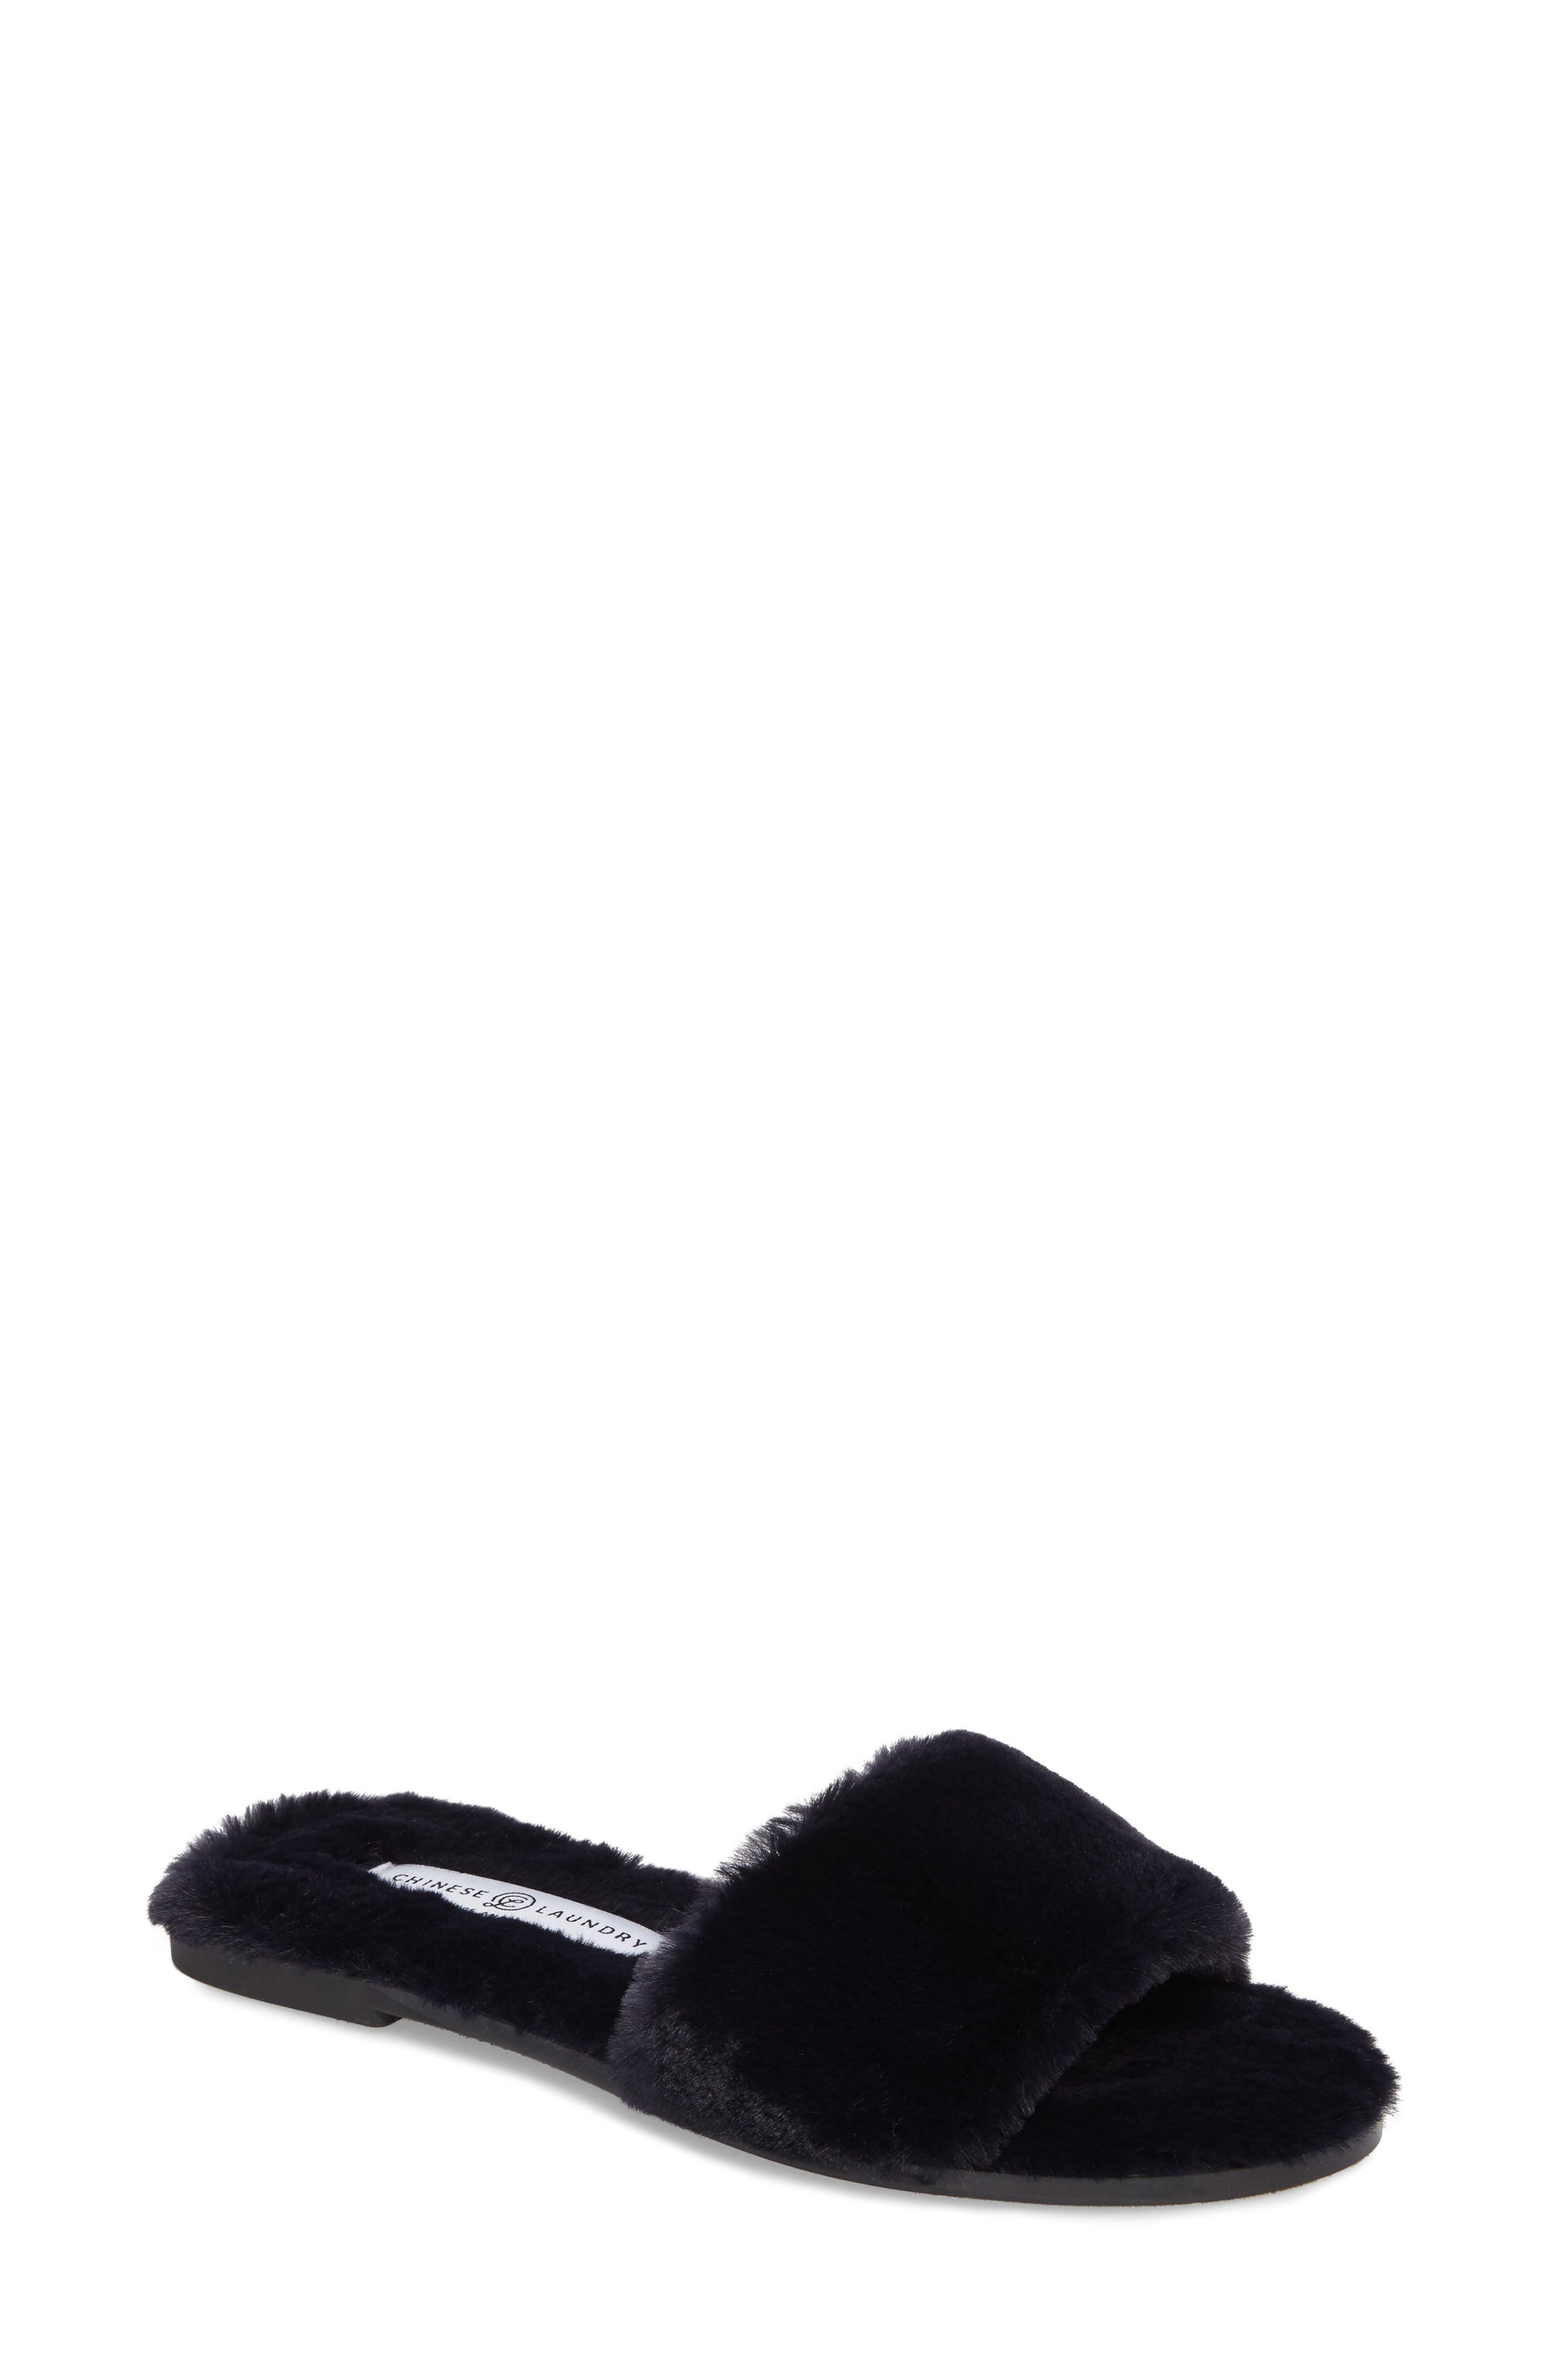 Main Image - Chinese Laundry Mulholland Faux Fur Slide Sandal (Women)